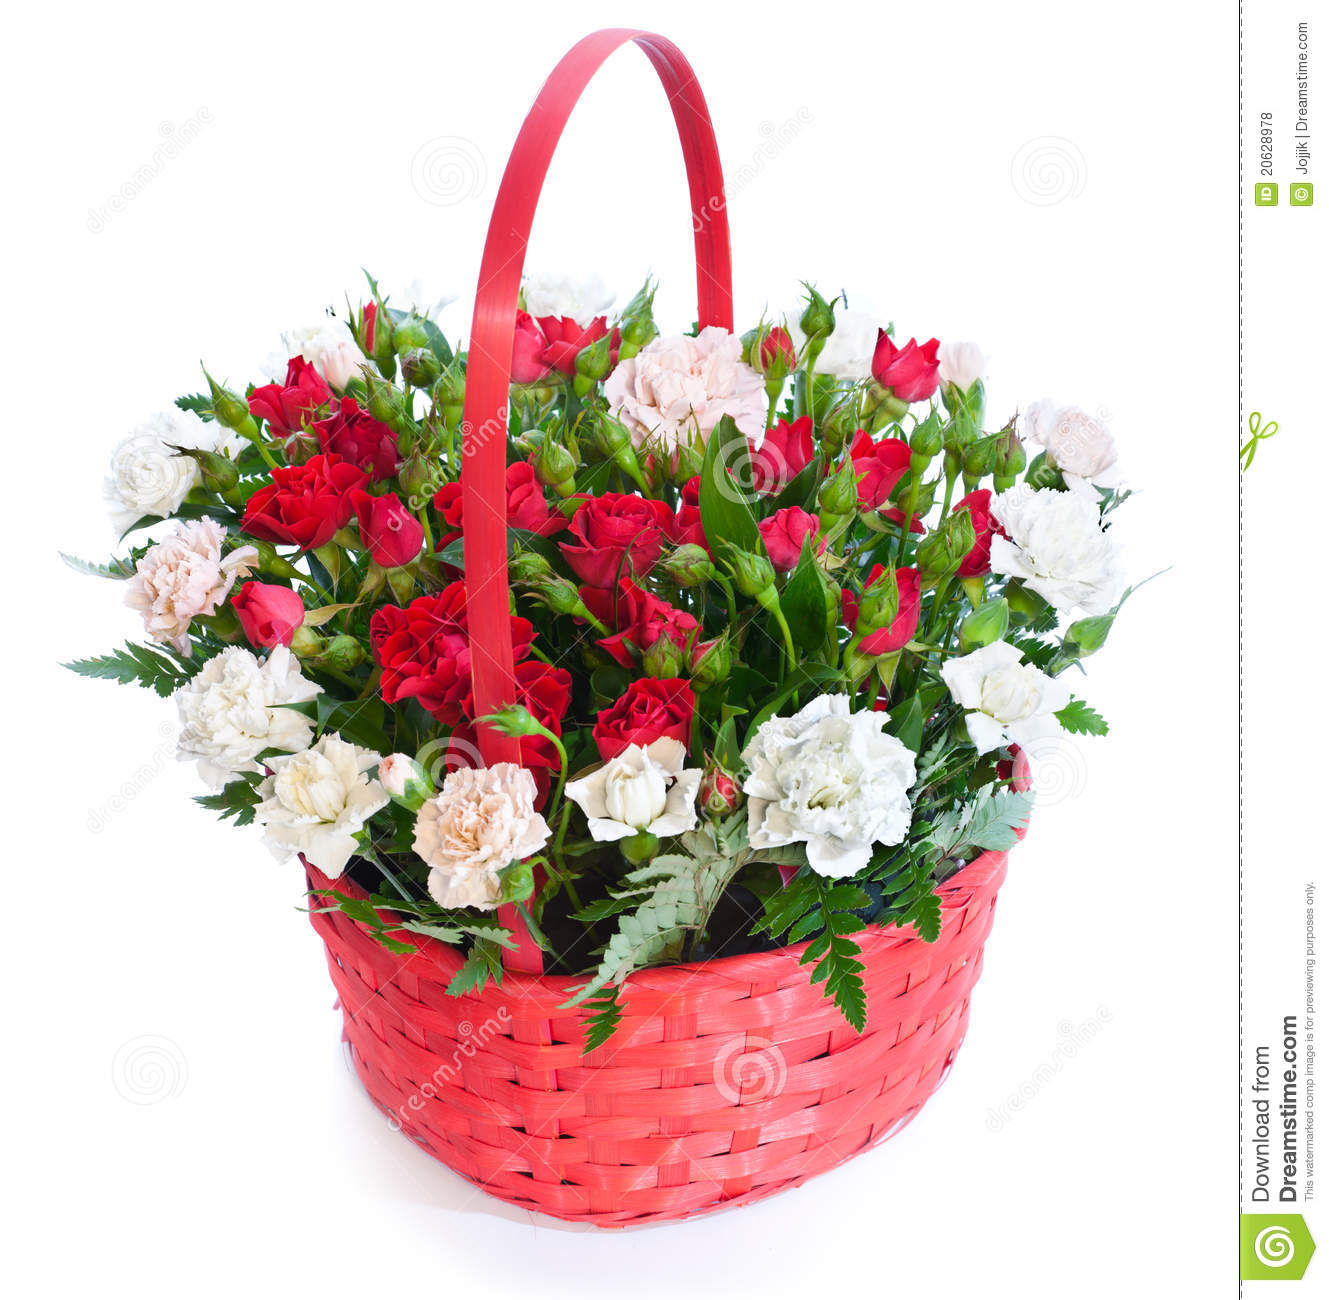 Bright flower bouquet in basket stock photo image of colorful download bright flower bouquet in basket stock photo image of colorful fresh 20628978 izmirmasajfo